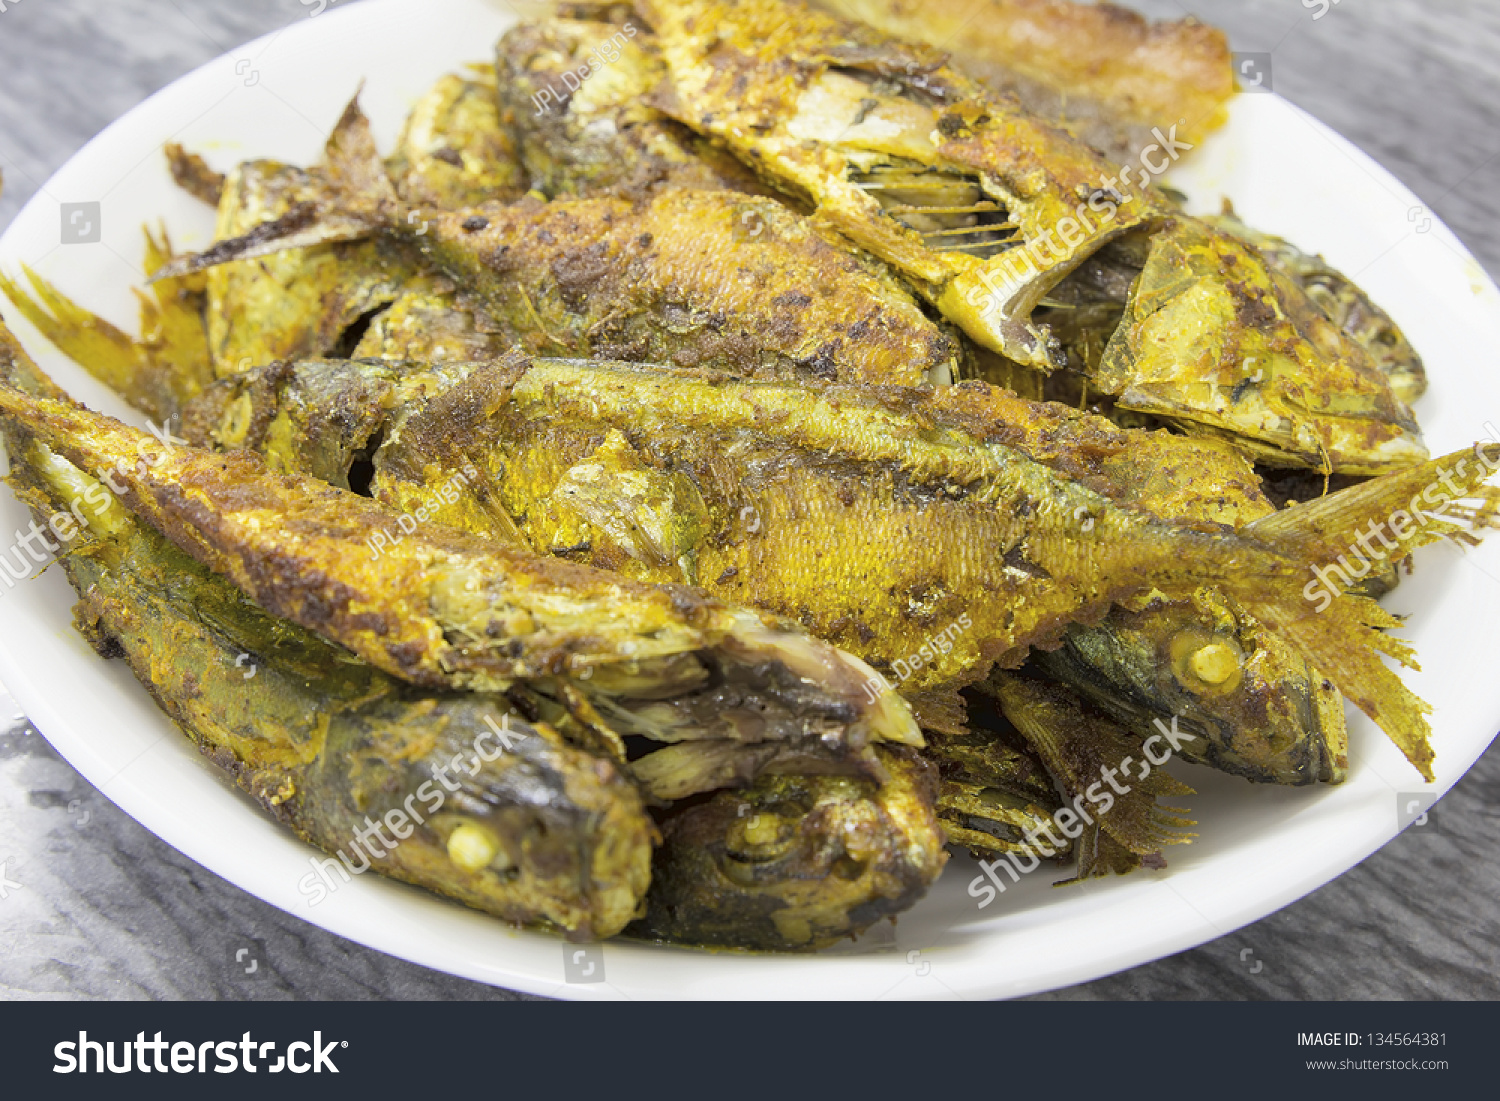 Deep fried whole selar kuning fish stock photo 134564381 for Deep fried whole fish